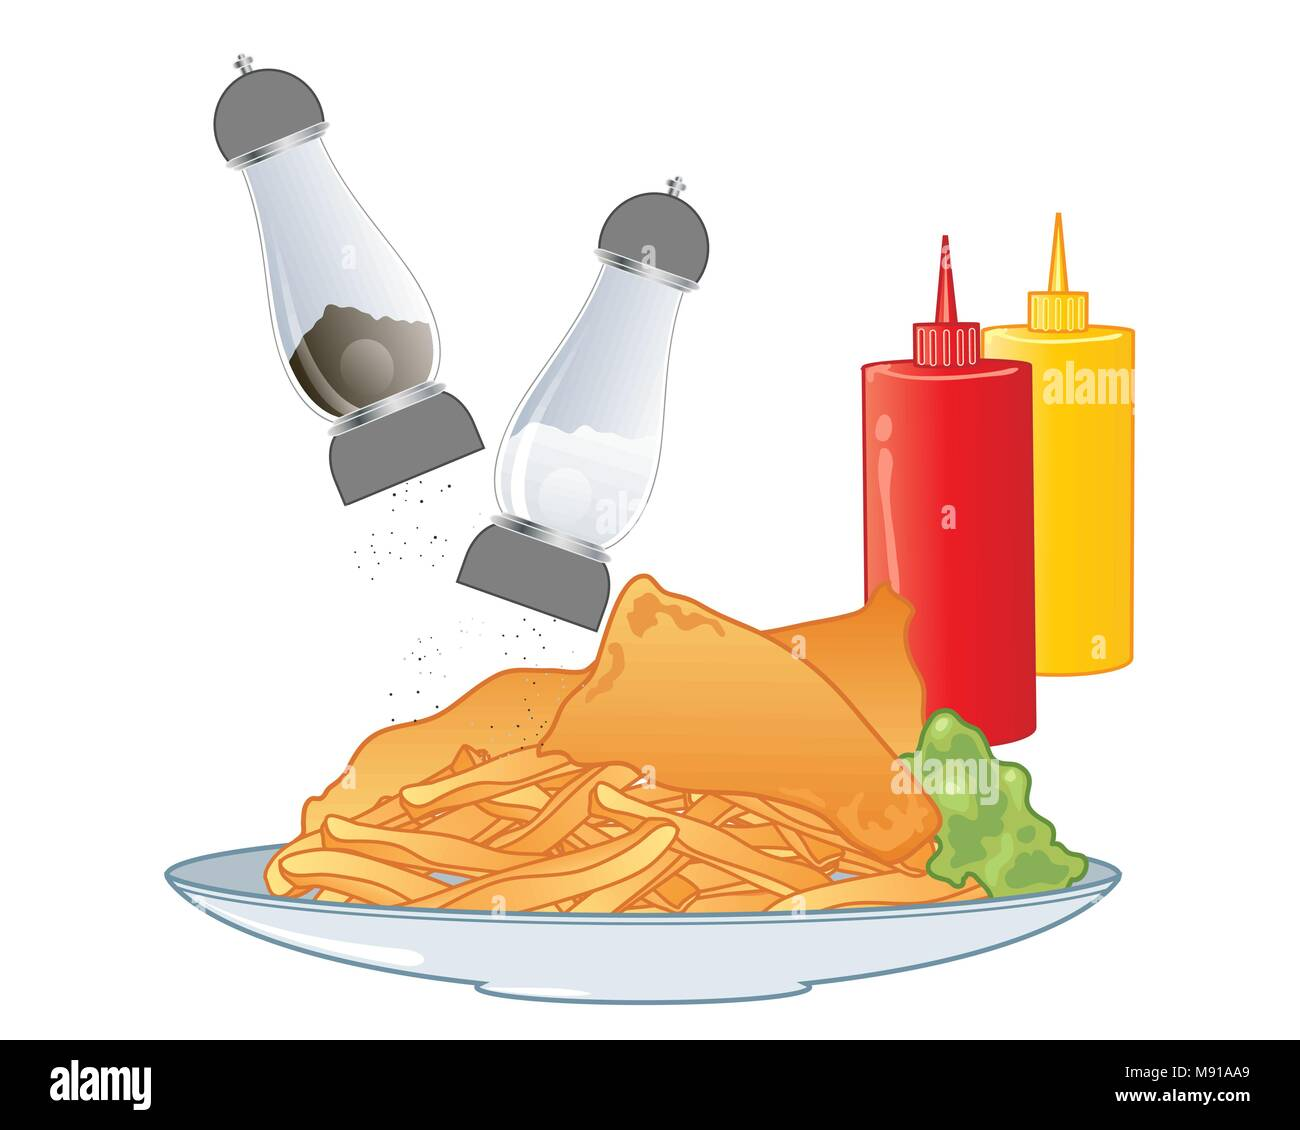 a vector illustration in eps 10 format of a plate of fish and chips with salt and pepper and ketchup and mustard condiments on a white background - Stock Vector